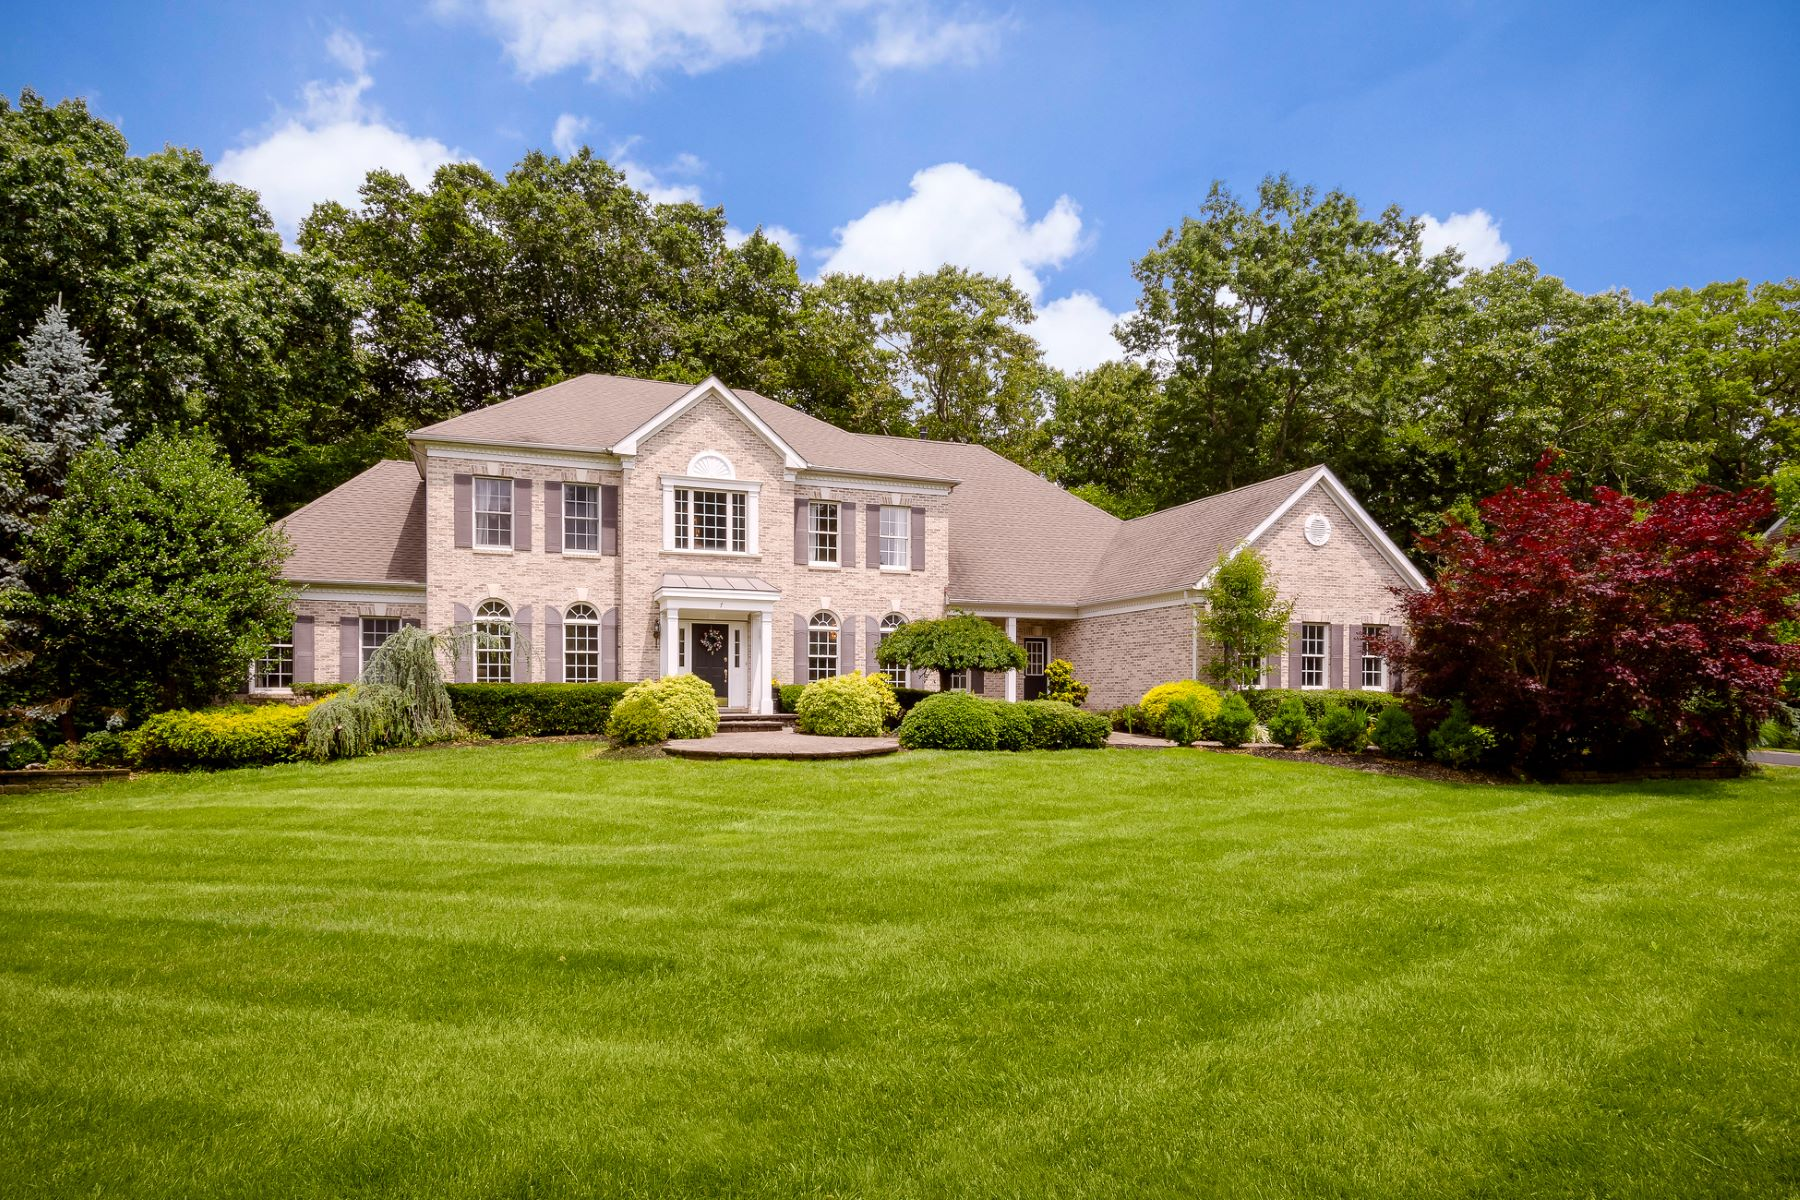 Property para Venda às Stately Brick Front Colonial 7 Shady Brook Lane, Cranbury, Nova Jersey 08512 Estados Unidos